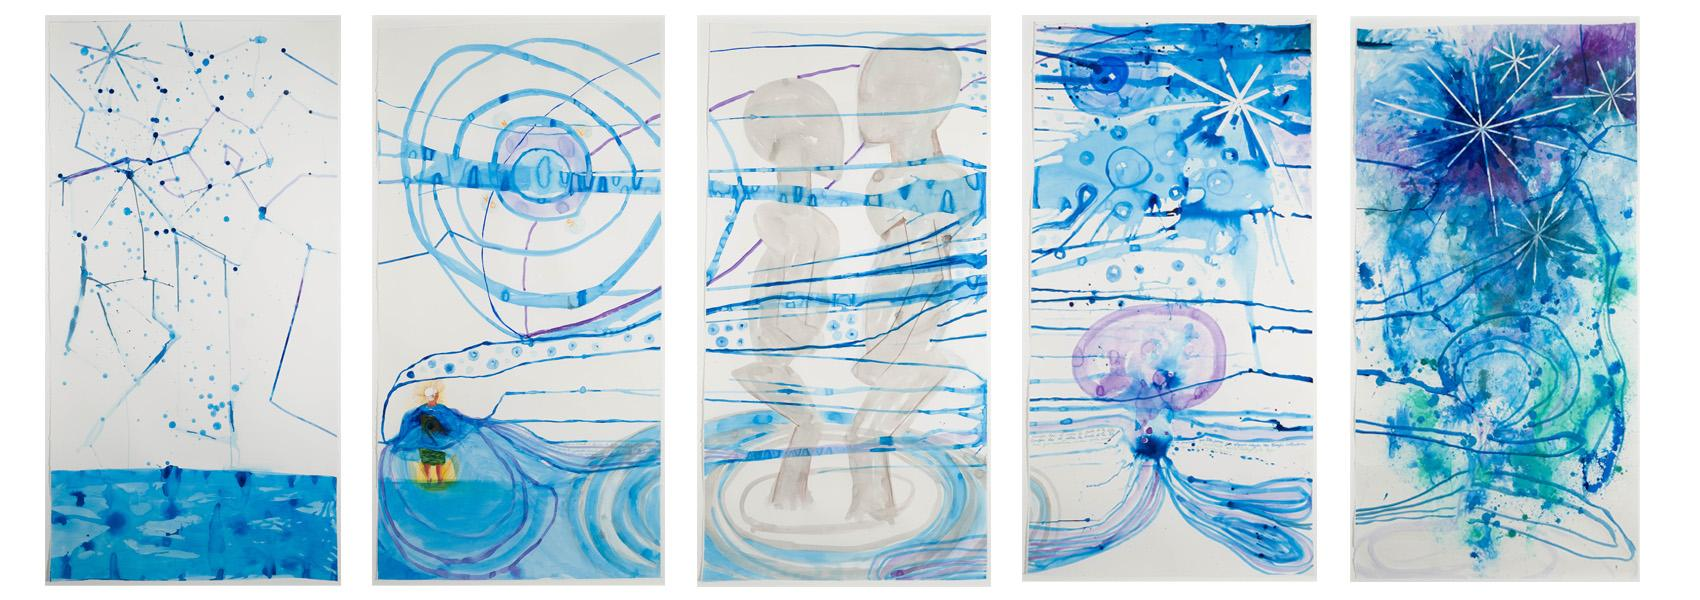 She Always Knew of the Space In-Between 2019 Gouache, Watercolor, Acrylic Ink, Peacock Feather on Paper, Each 66 1/4 x 35 1/4 inches Courtesy of the Artist and Gallery Wendi Norris